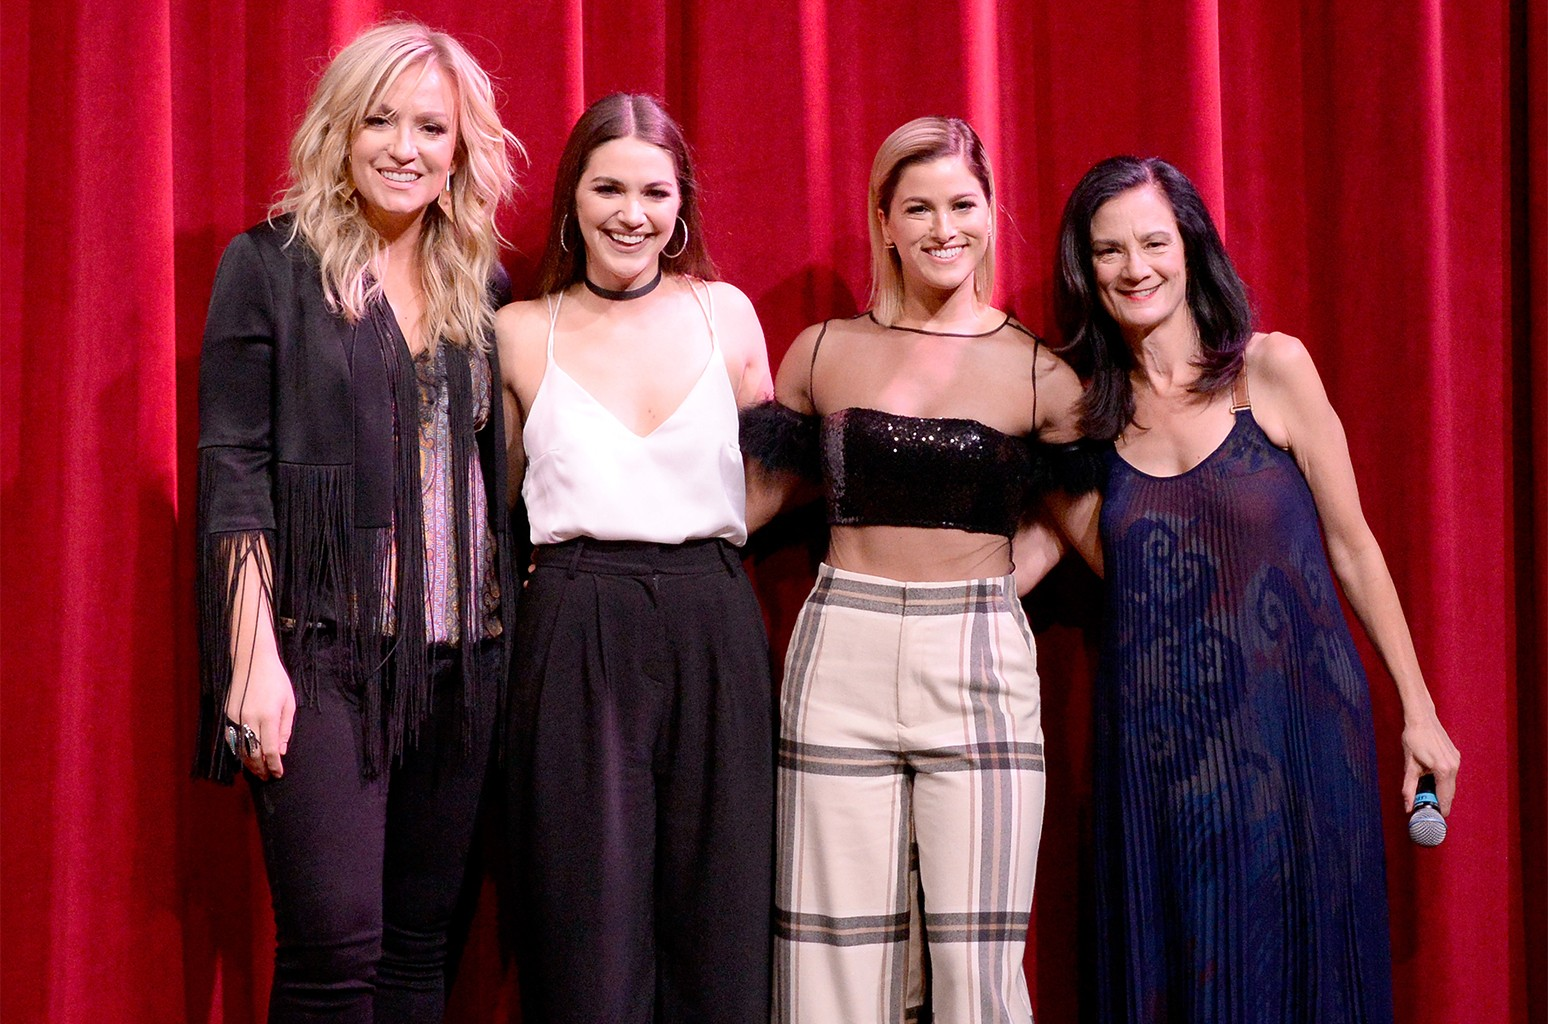 Clare Dunn, Hannah Ellis, Cassadee Pope and Senior Vice President of Music Strategy for CMT Leslie Fram take photos onstage during the 2018 CMT Next Women of Country event at City Winery Nashville on Nov 13, 2018 in Nashville.